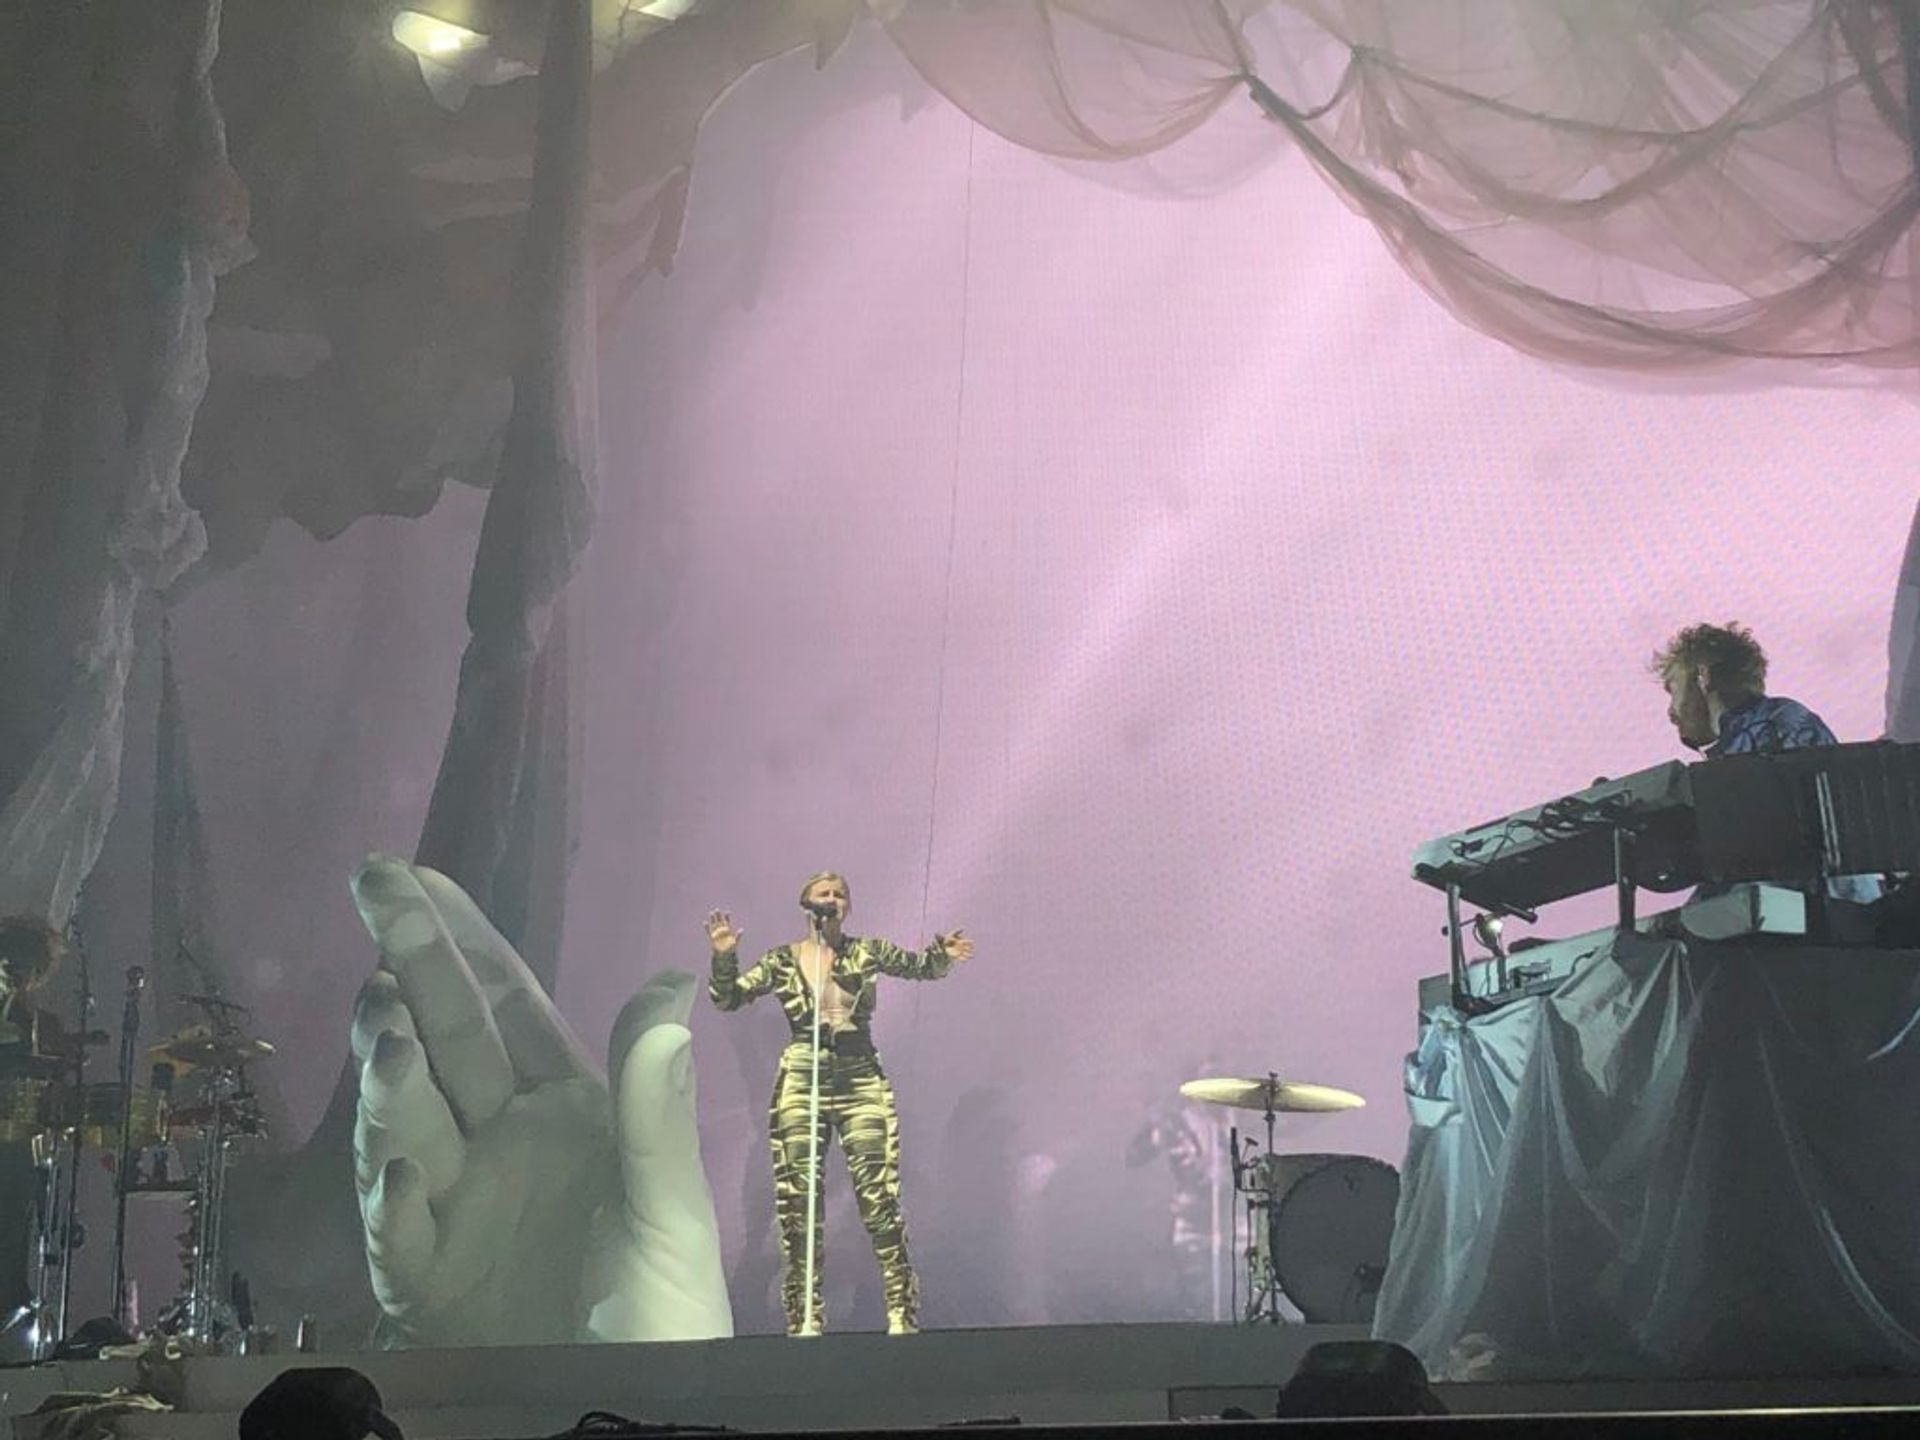 Robyn singing live on stage.